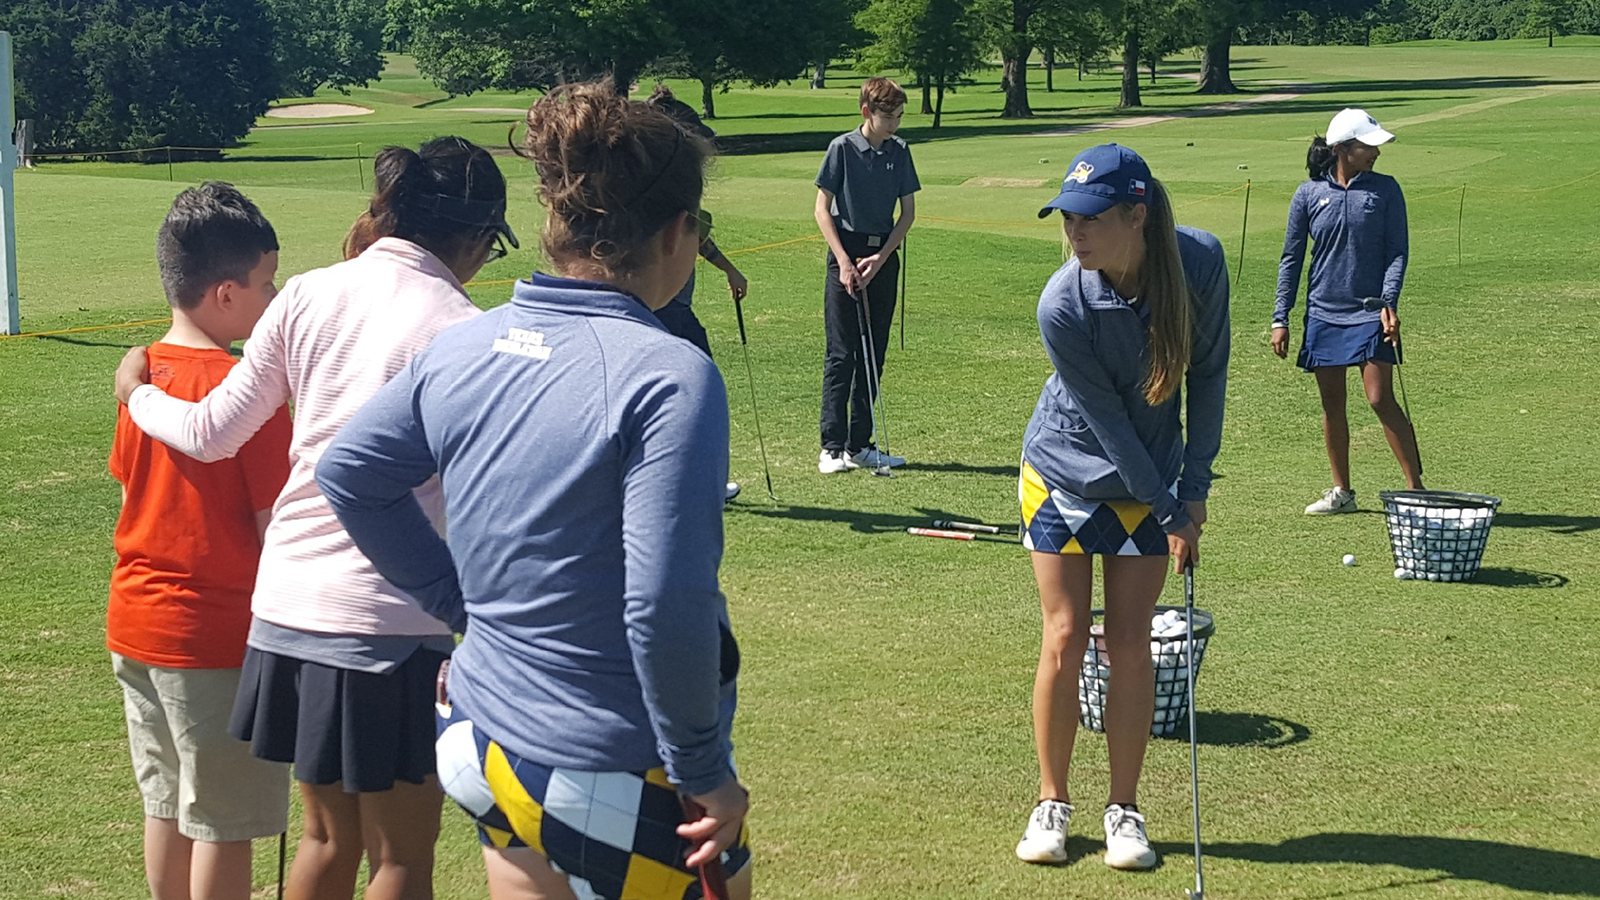 Women's Golf Teaming Up for Character?